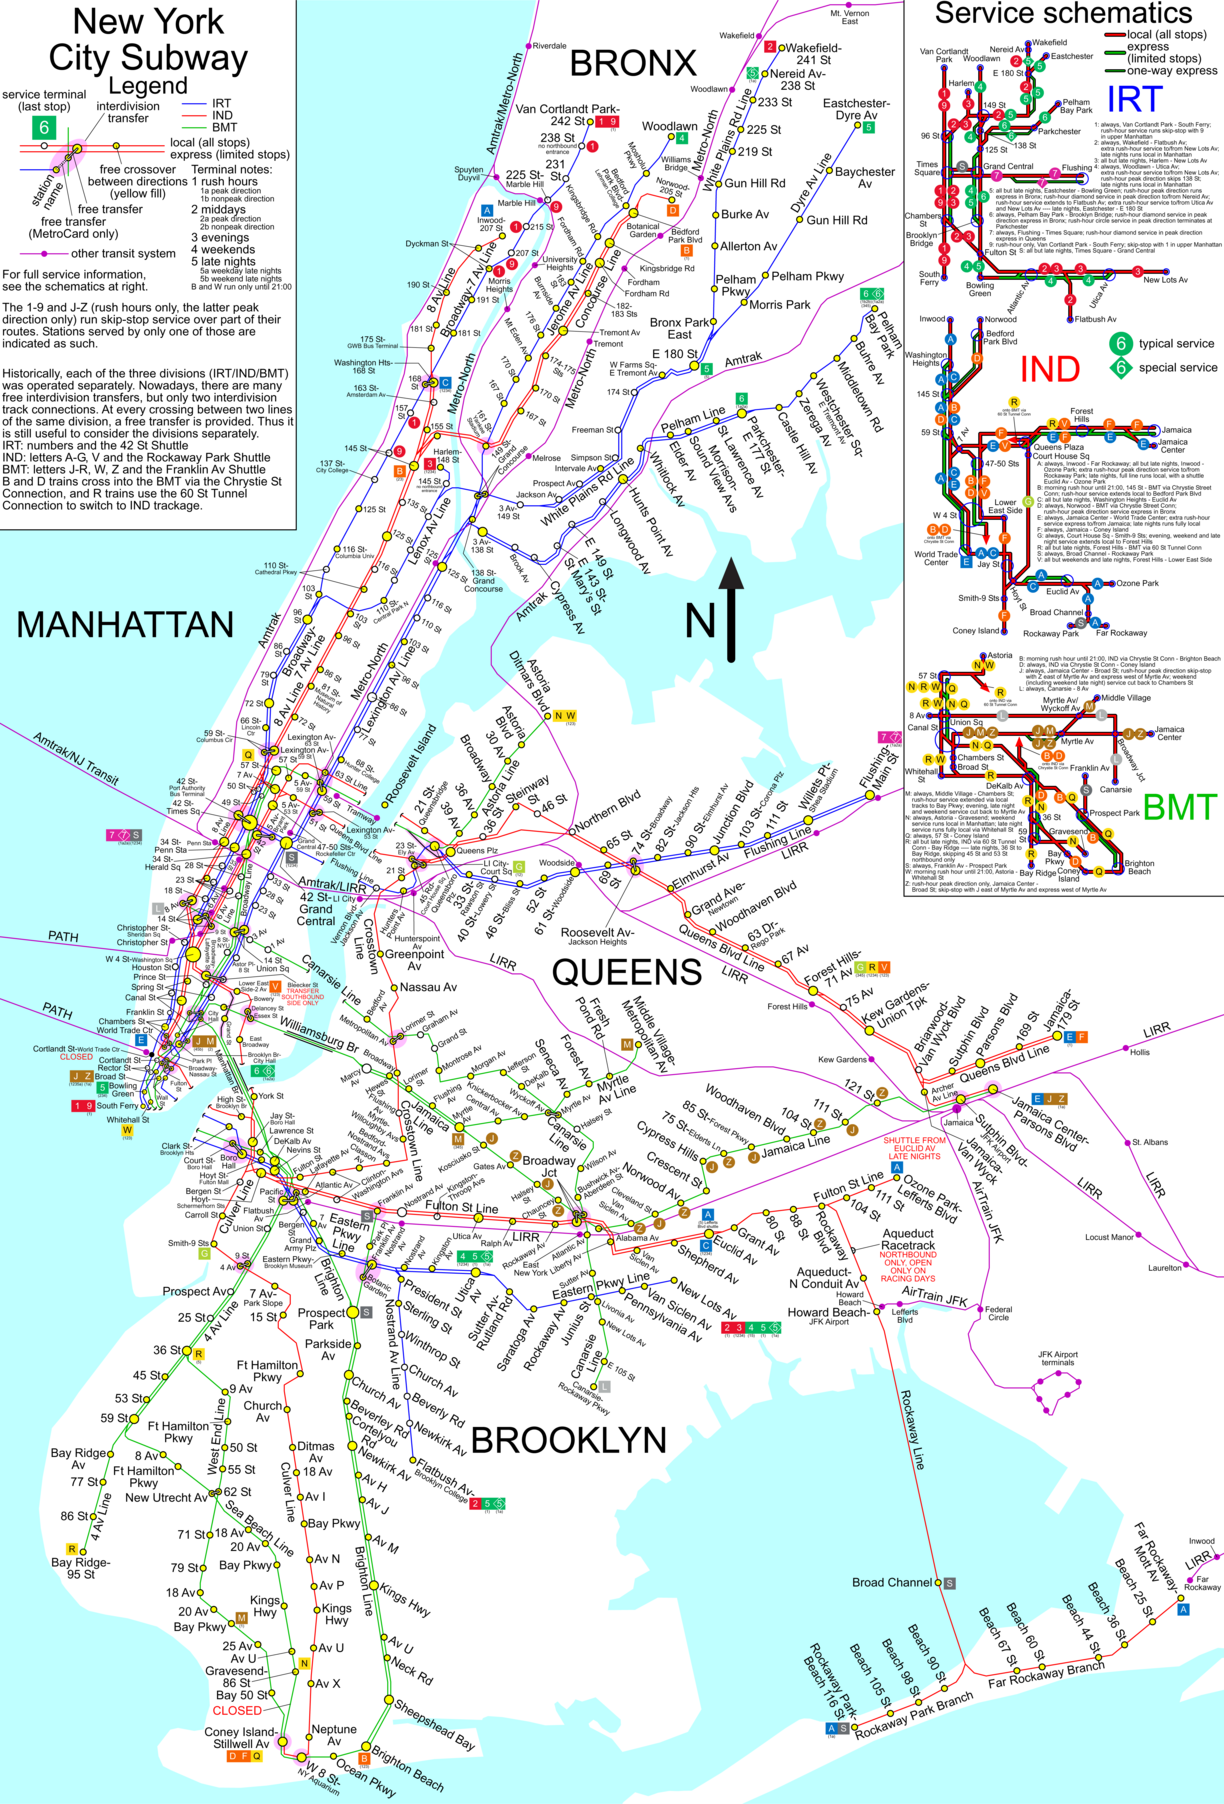 New York And Subway Map.Www Nycsubway Org New York City Subway Route Map By Spui